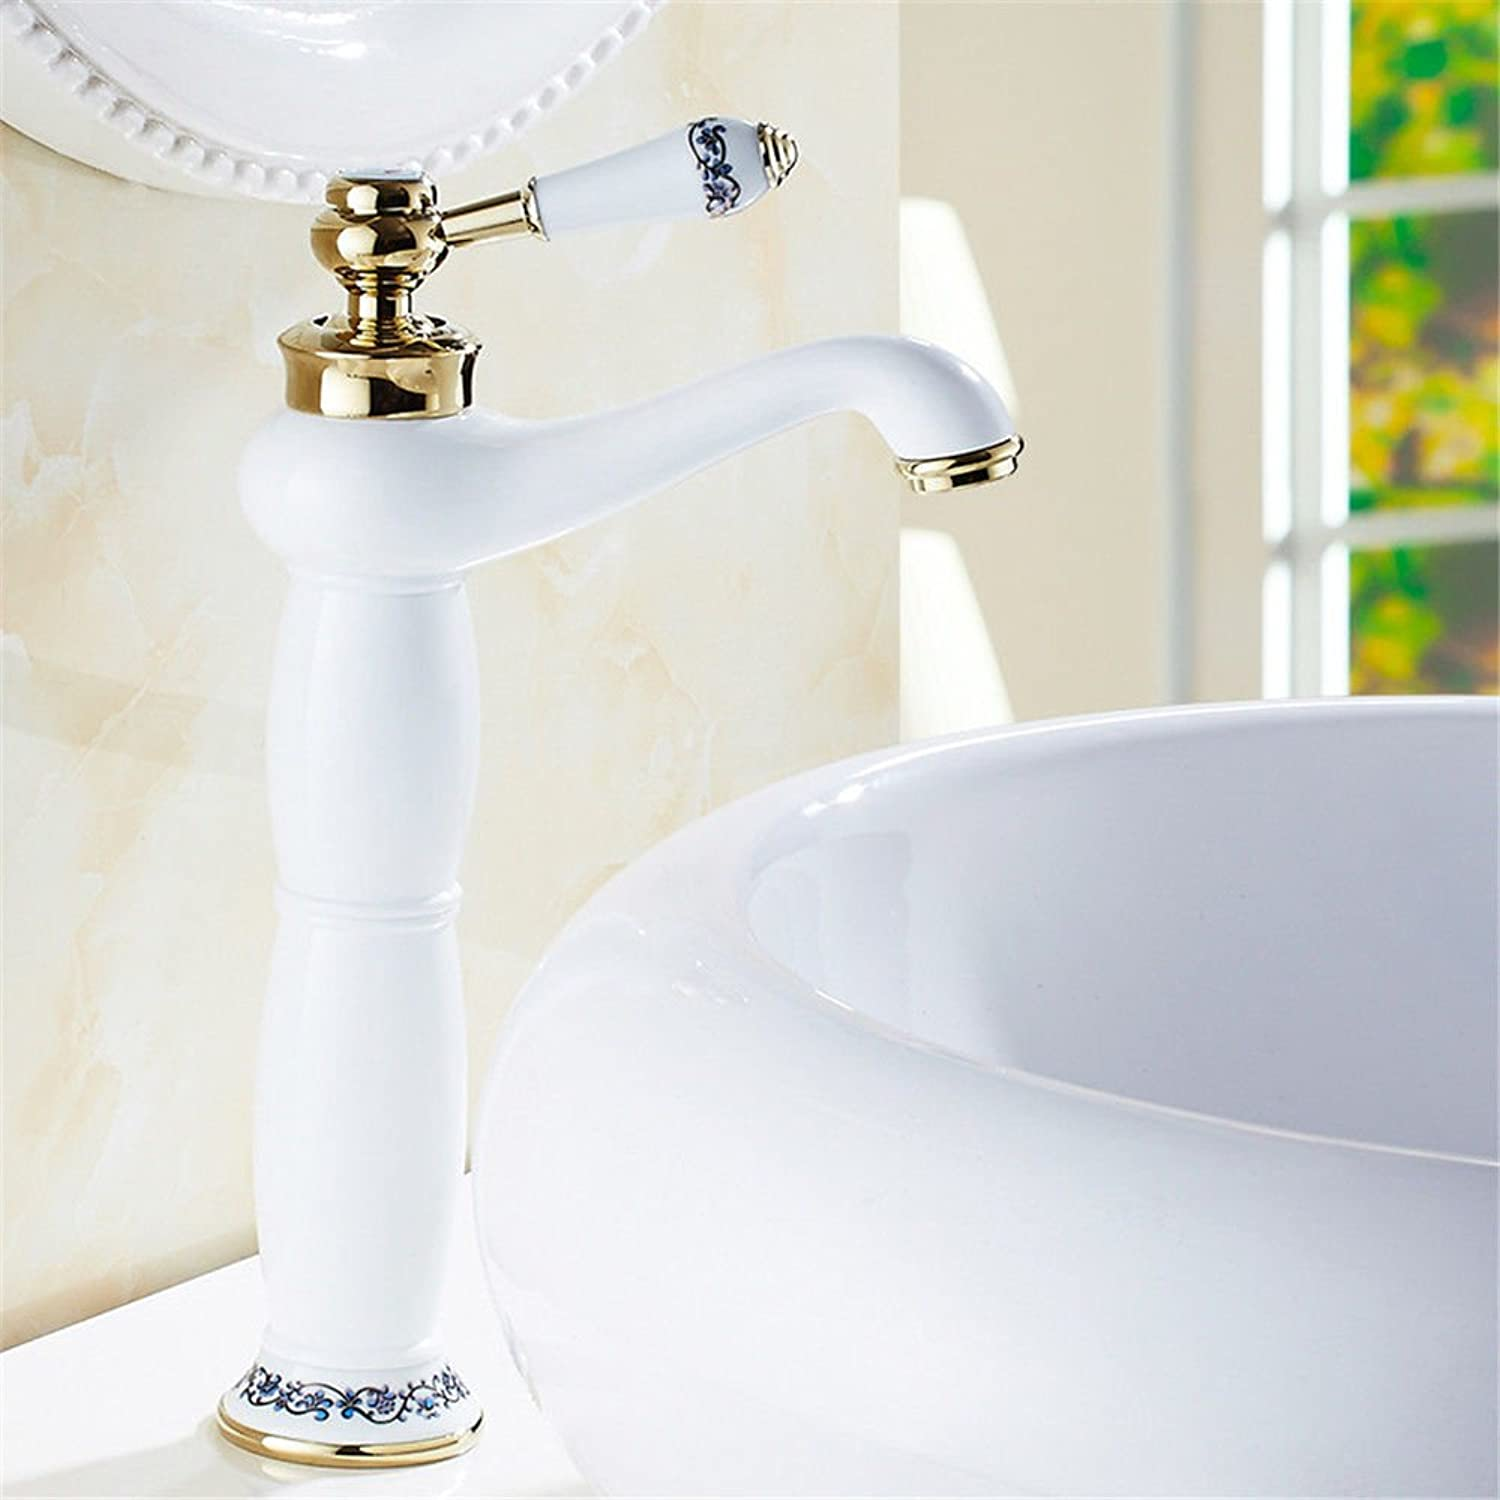 Gyps Faucet Sink Single Lever Mixer Tap Fitting for Bathroom White Hot and Cold Taps Copper Bath Plus High bluee Tiled High , Mixer Tap Bathroom Sink Basin Mixer Tap